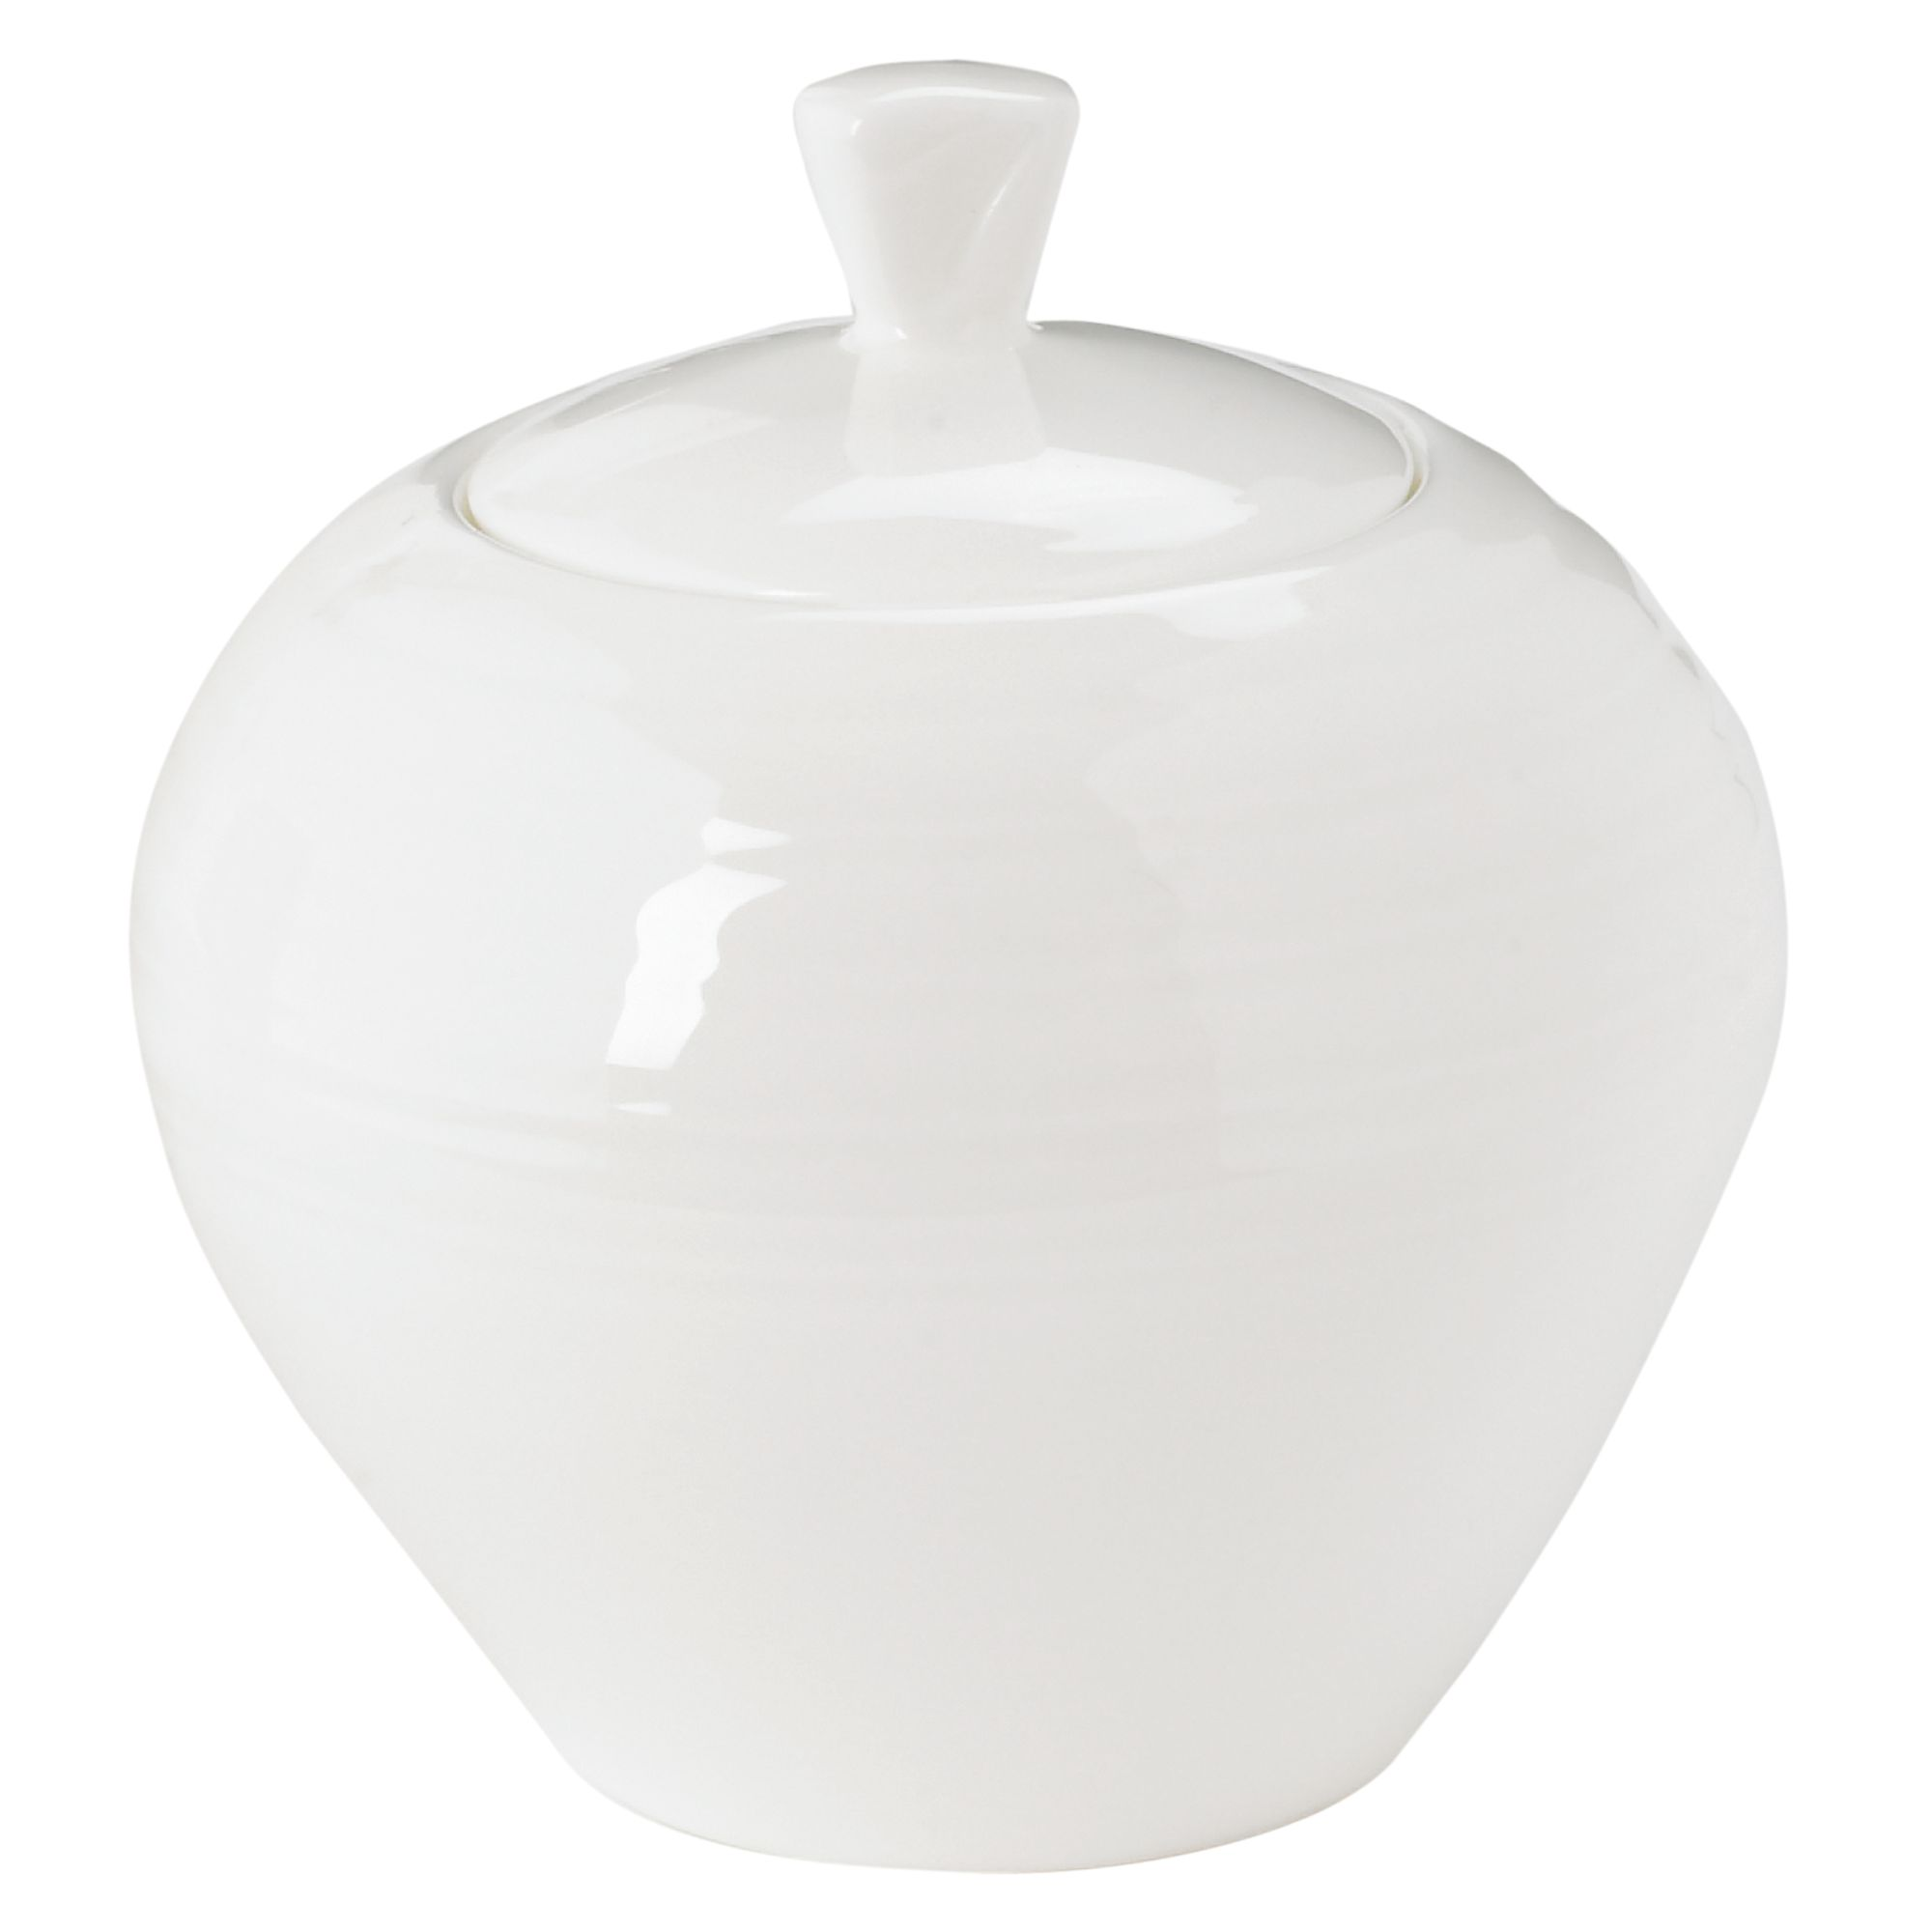 Soho bone china sugar bowl